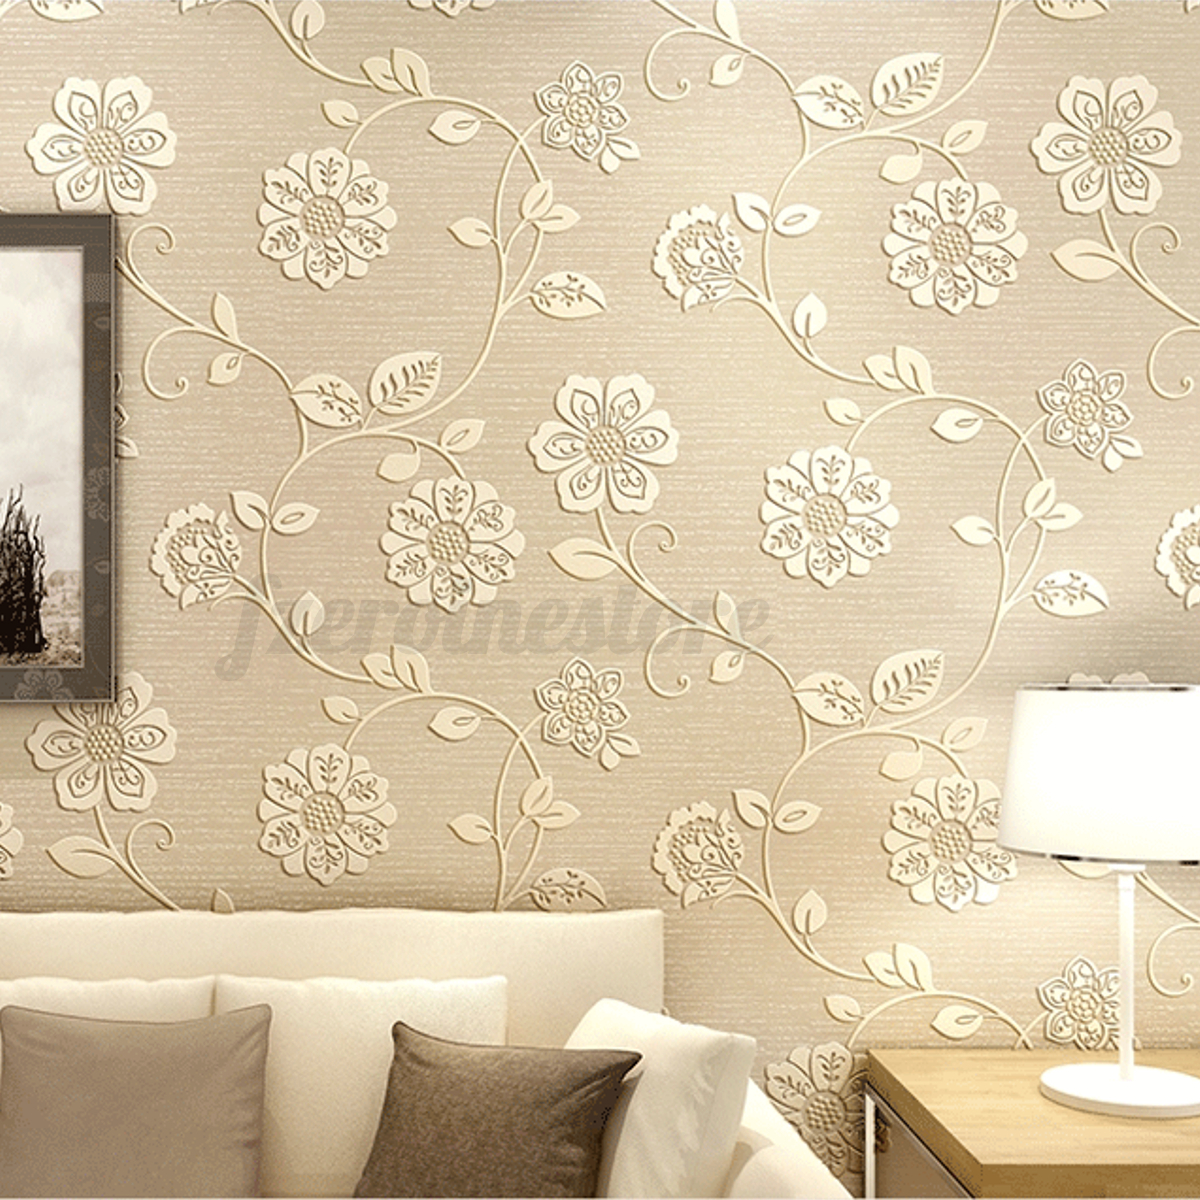 10m Luxury Flower Floral Embossed Textured Home Room Wallpaper Wall